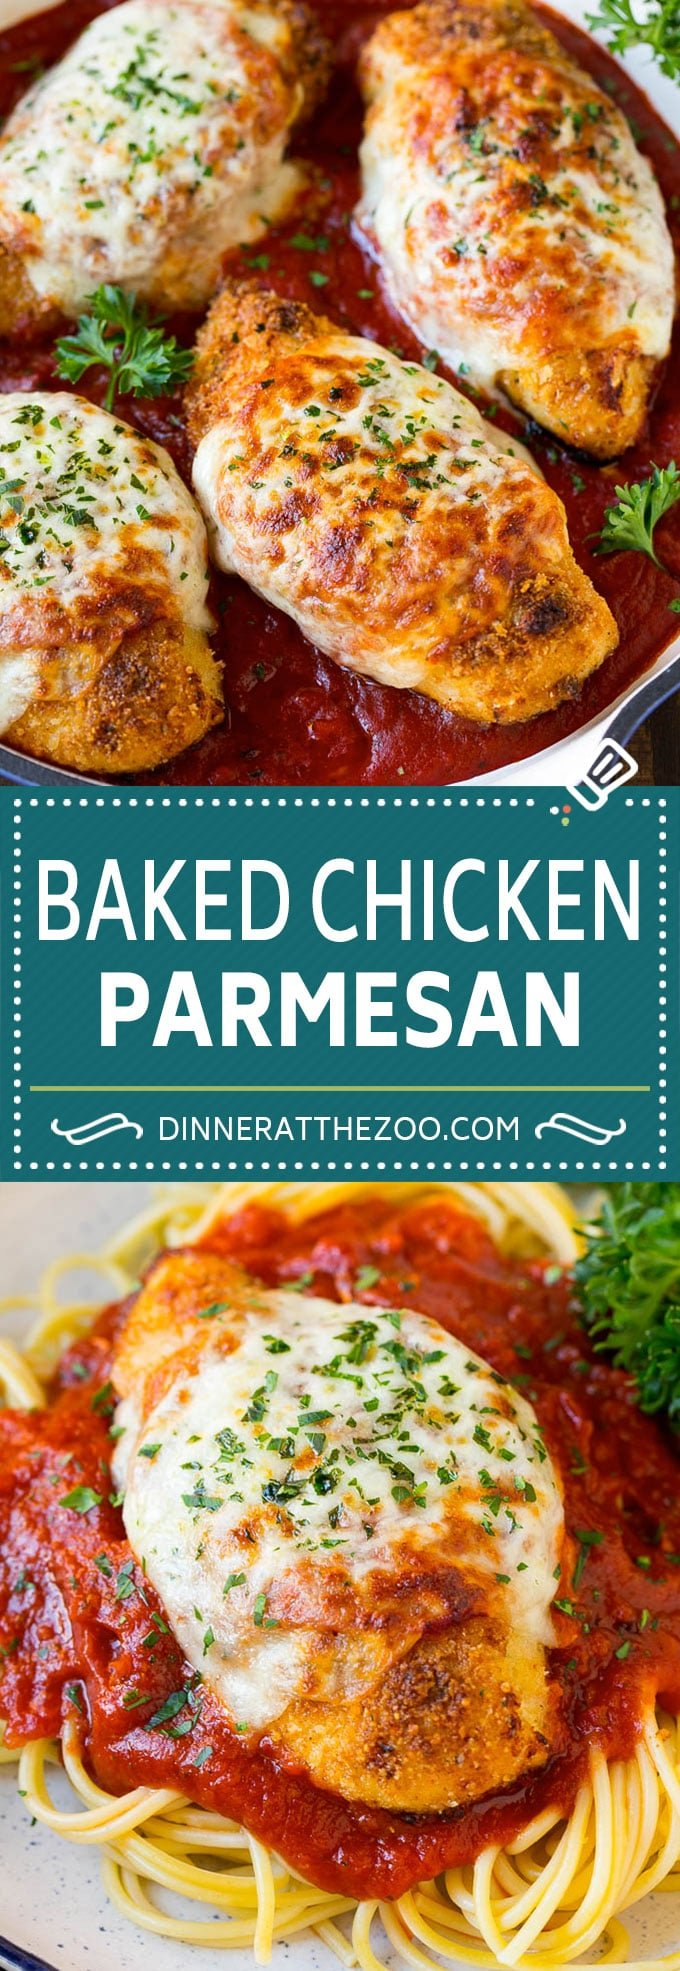 Baked Chicken Parmesan Dinner At The Zoo